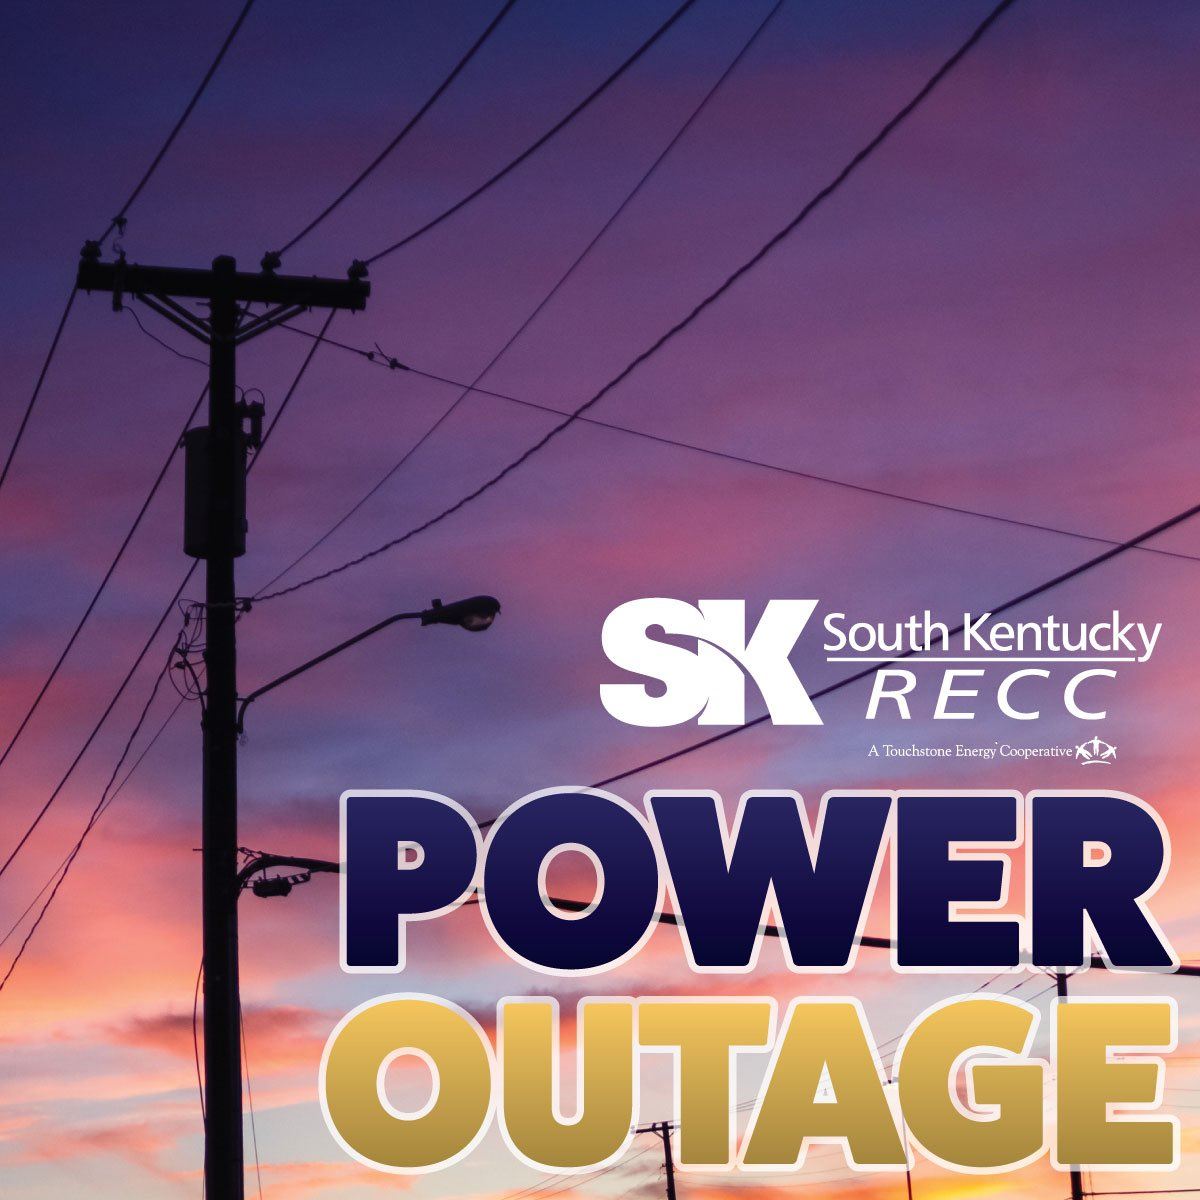 skrecc power outage map Southkentucky Recc On Twitter To Keep Track Of Outages Follow